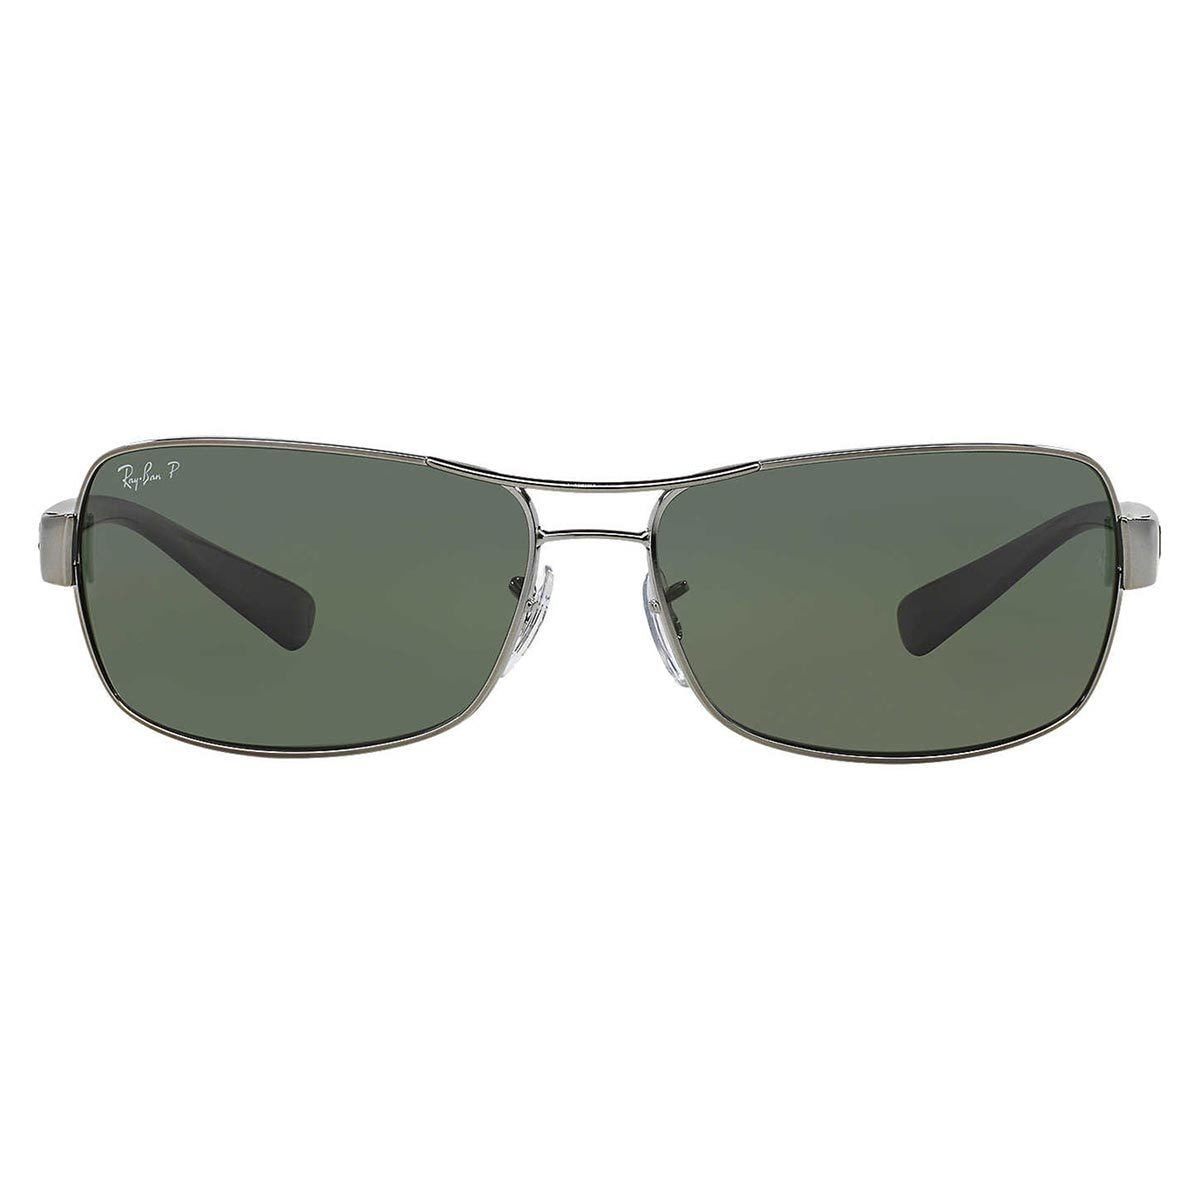 db639d0d9a Shop Ray-Ban Men s RB3379 004 58 Gunmetal Metal Rectangle Polarized  Sunglasses - Free Shipping Today - Overstock - 12389734